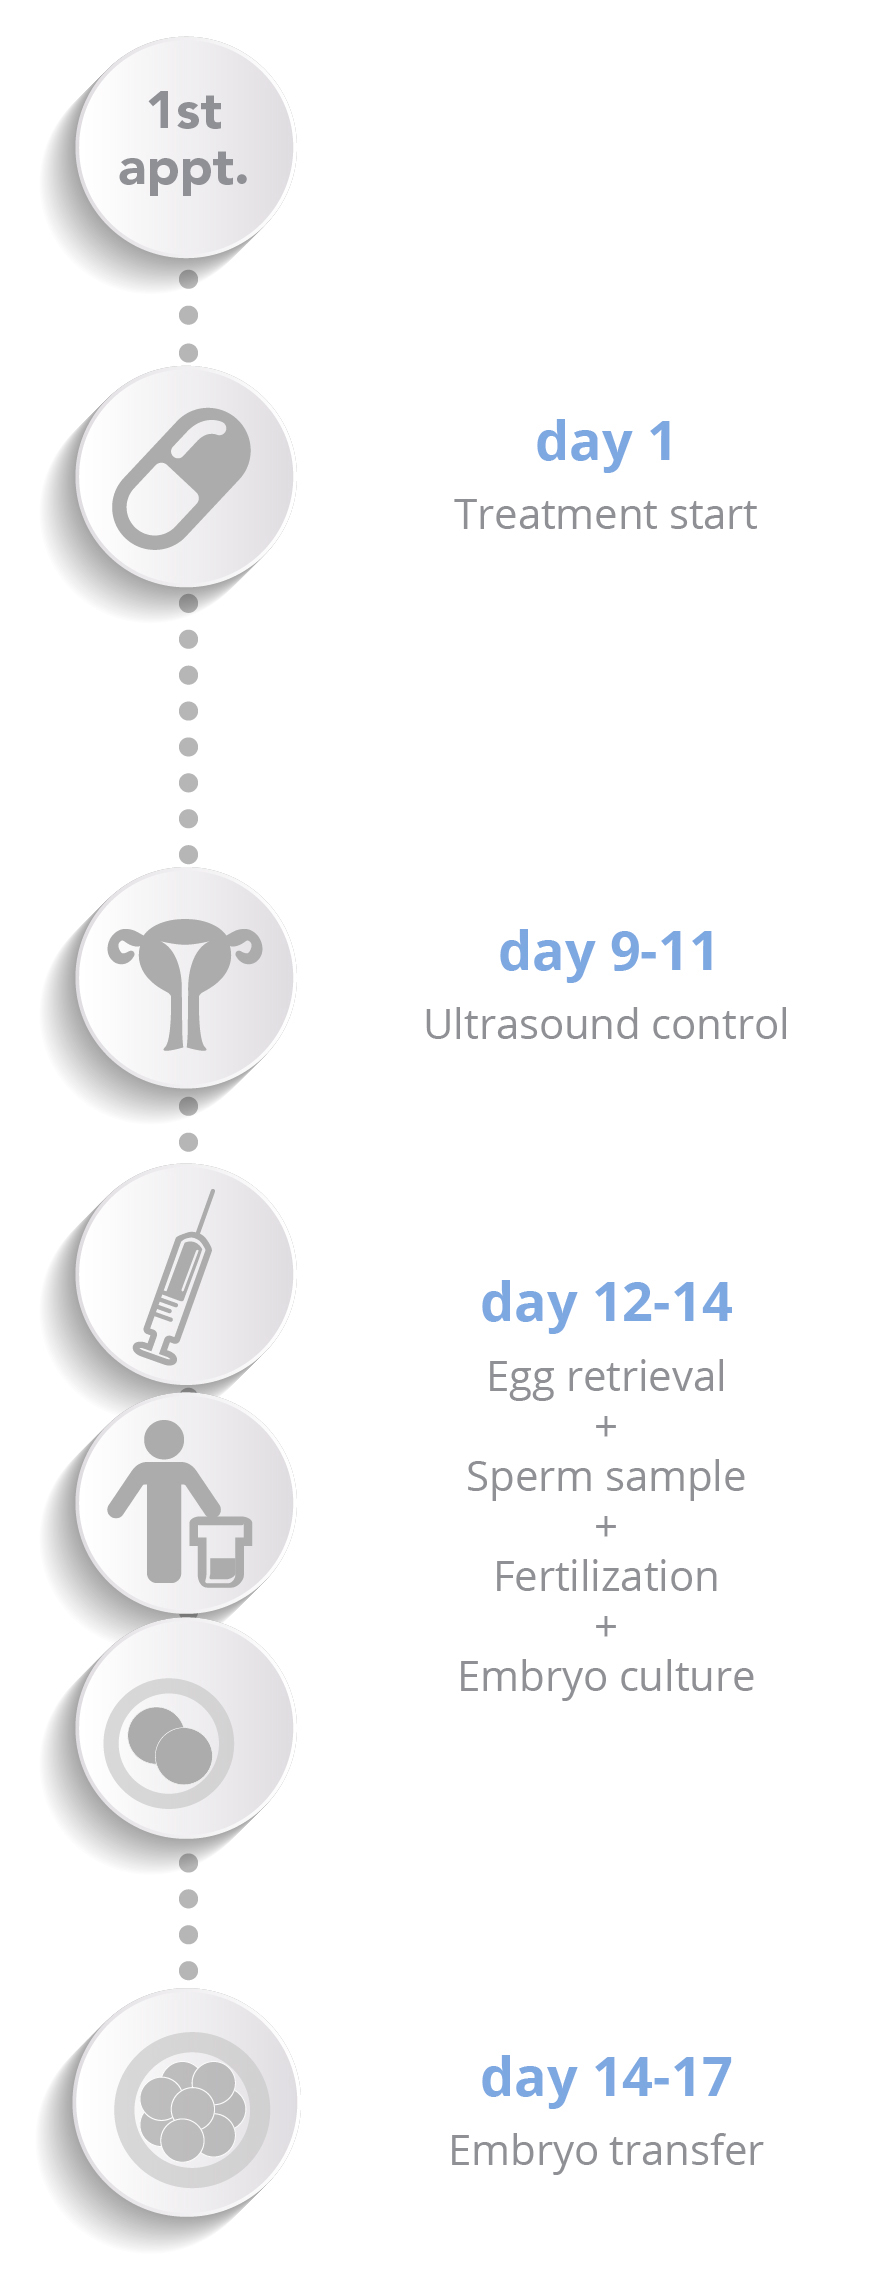 In vitro fertilisation - Schema verticale